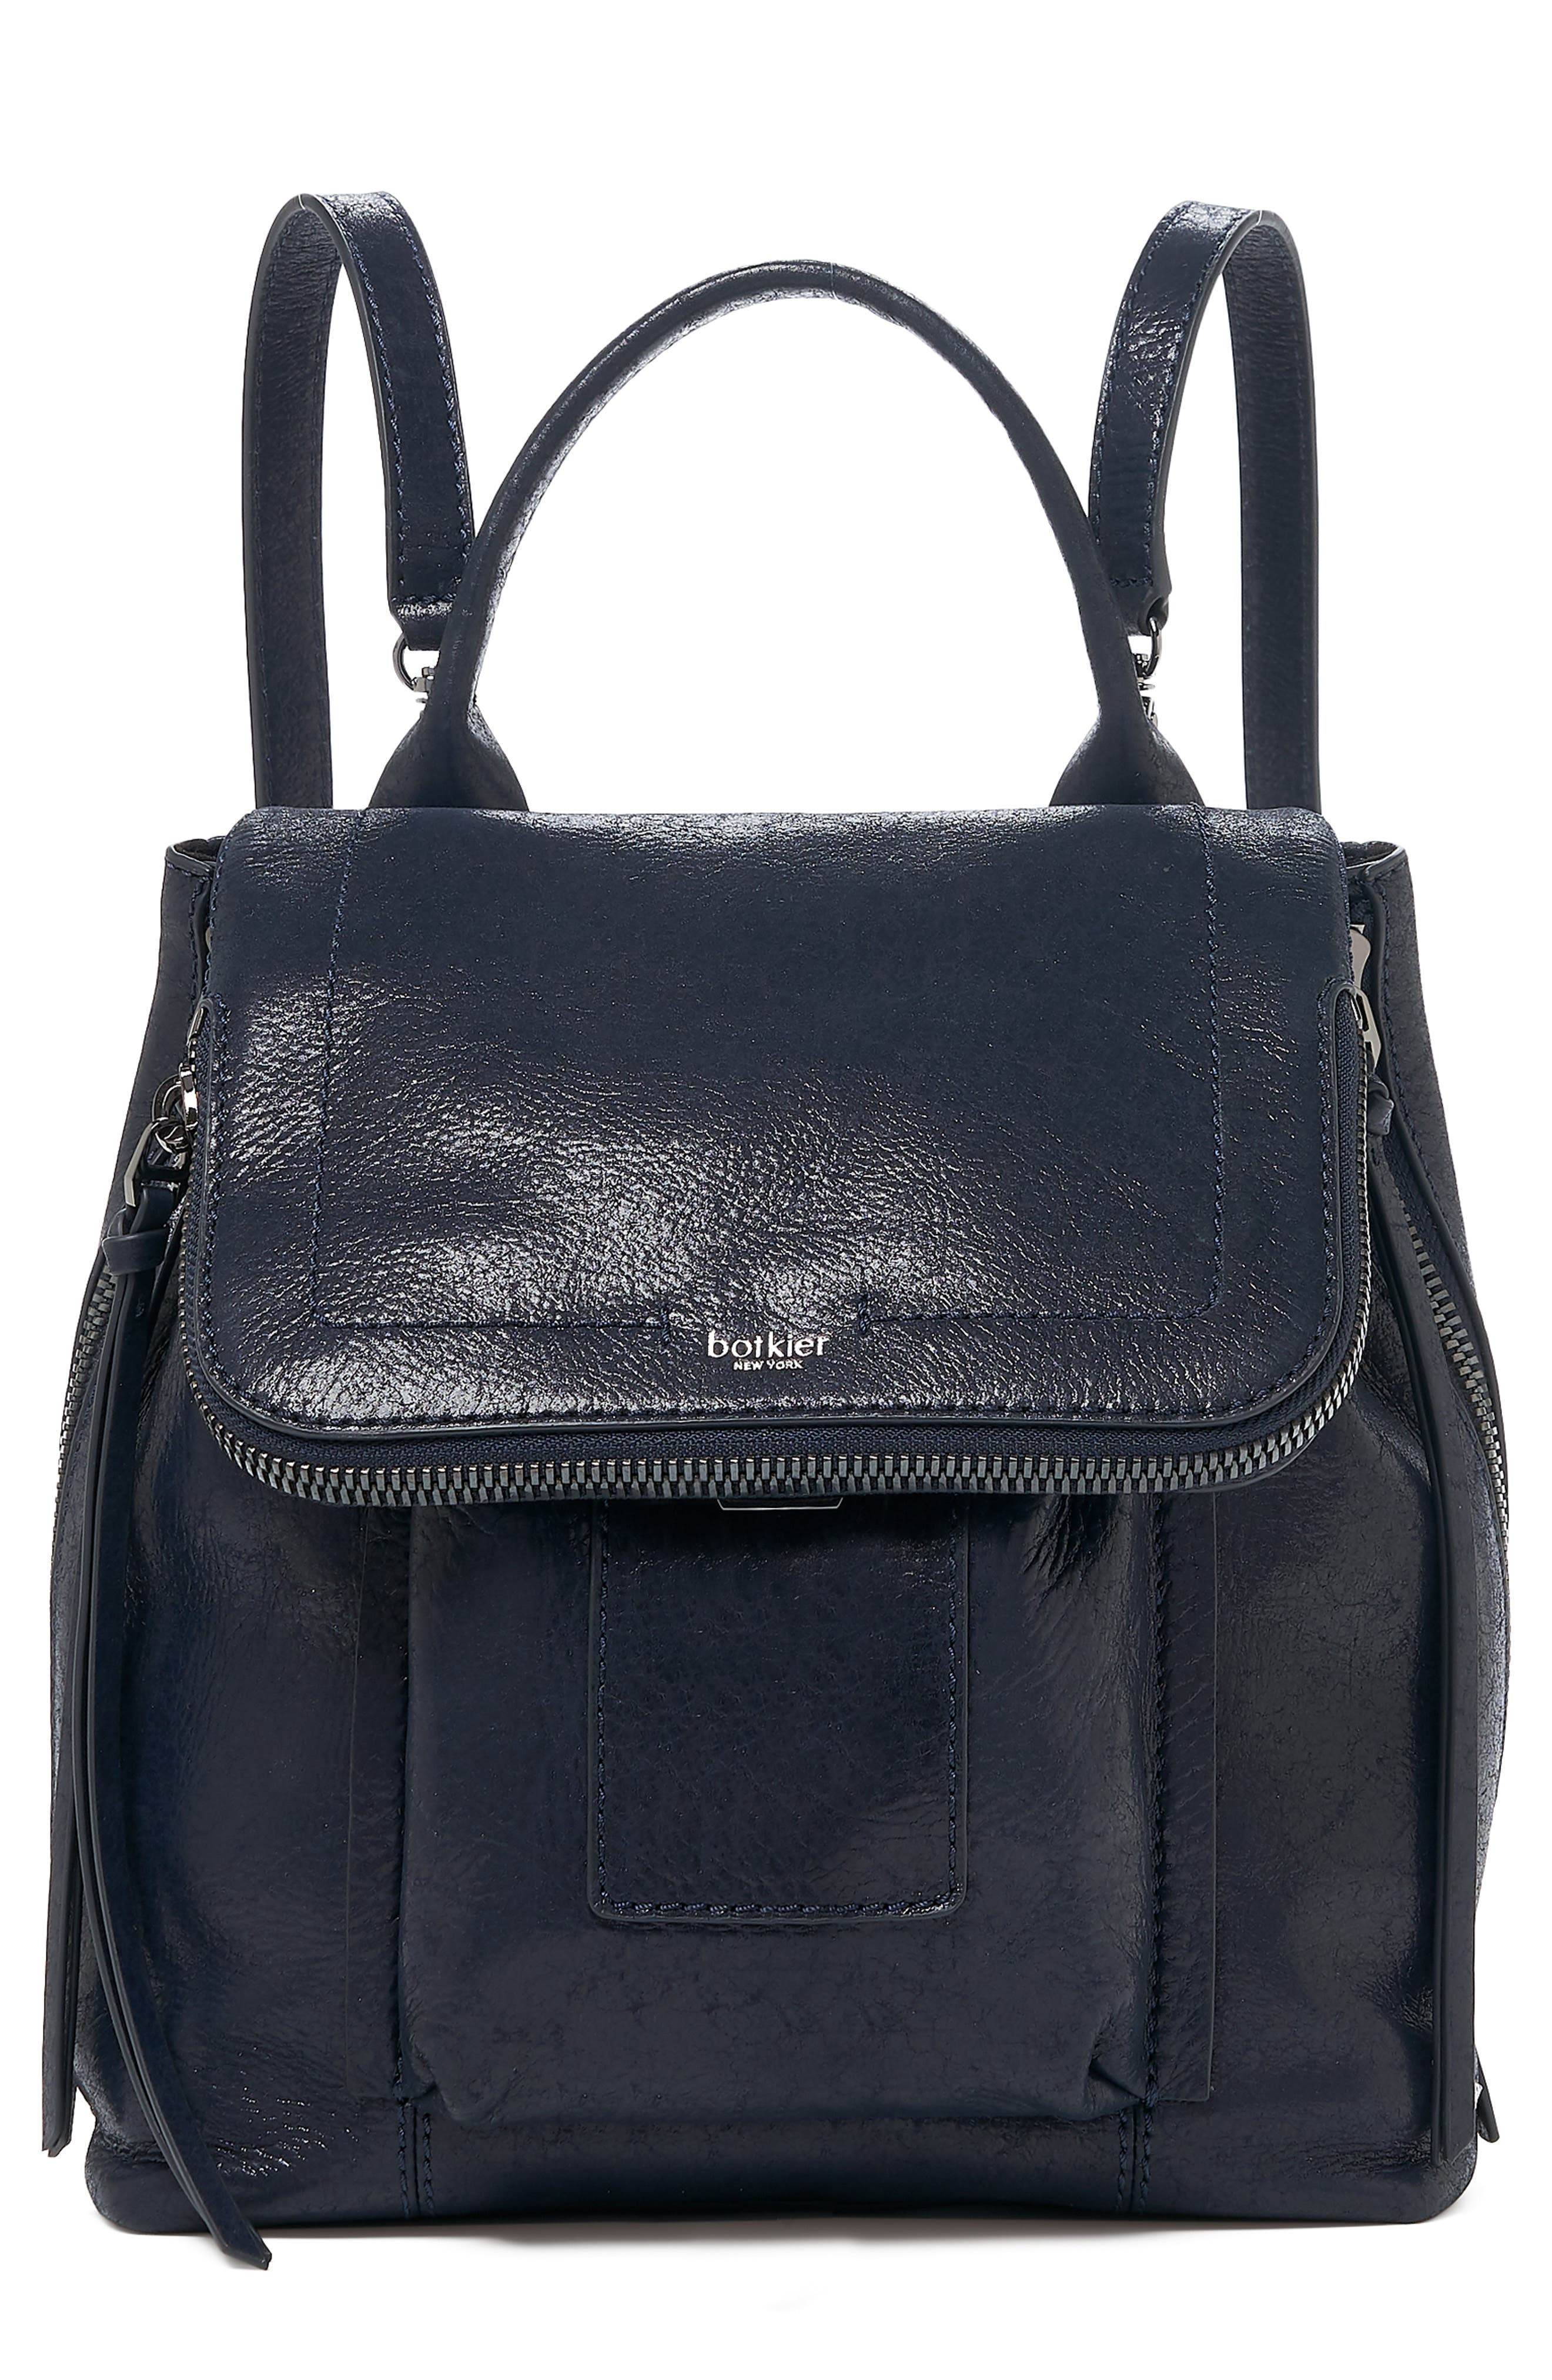 Warren Leather Backpack,                             Main thumbnail 1, color,                             NAVY